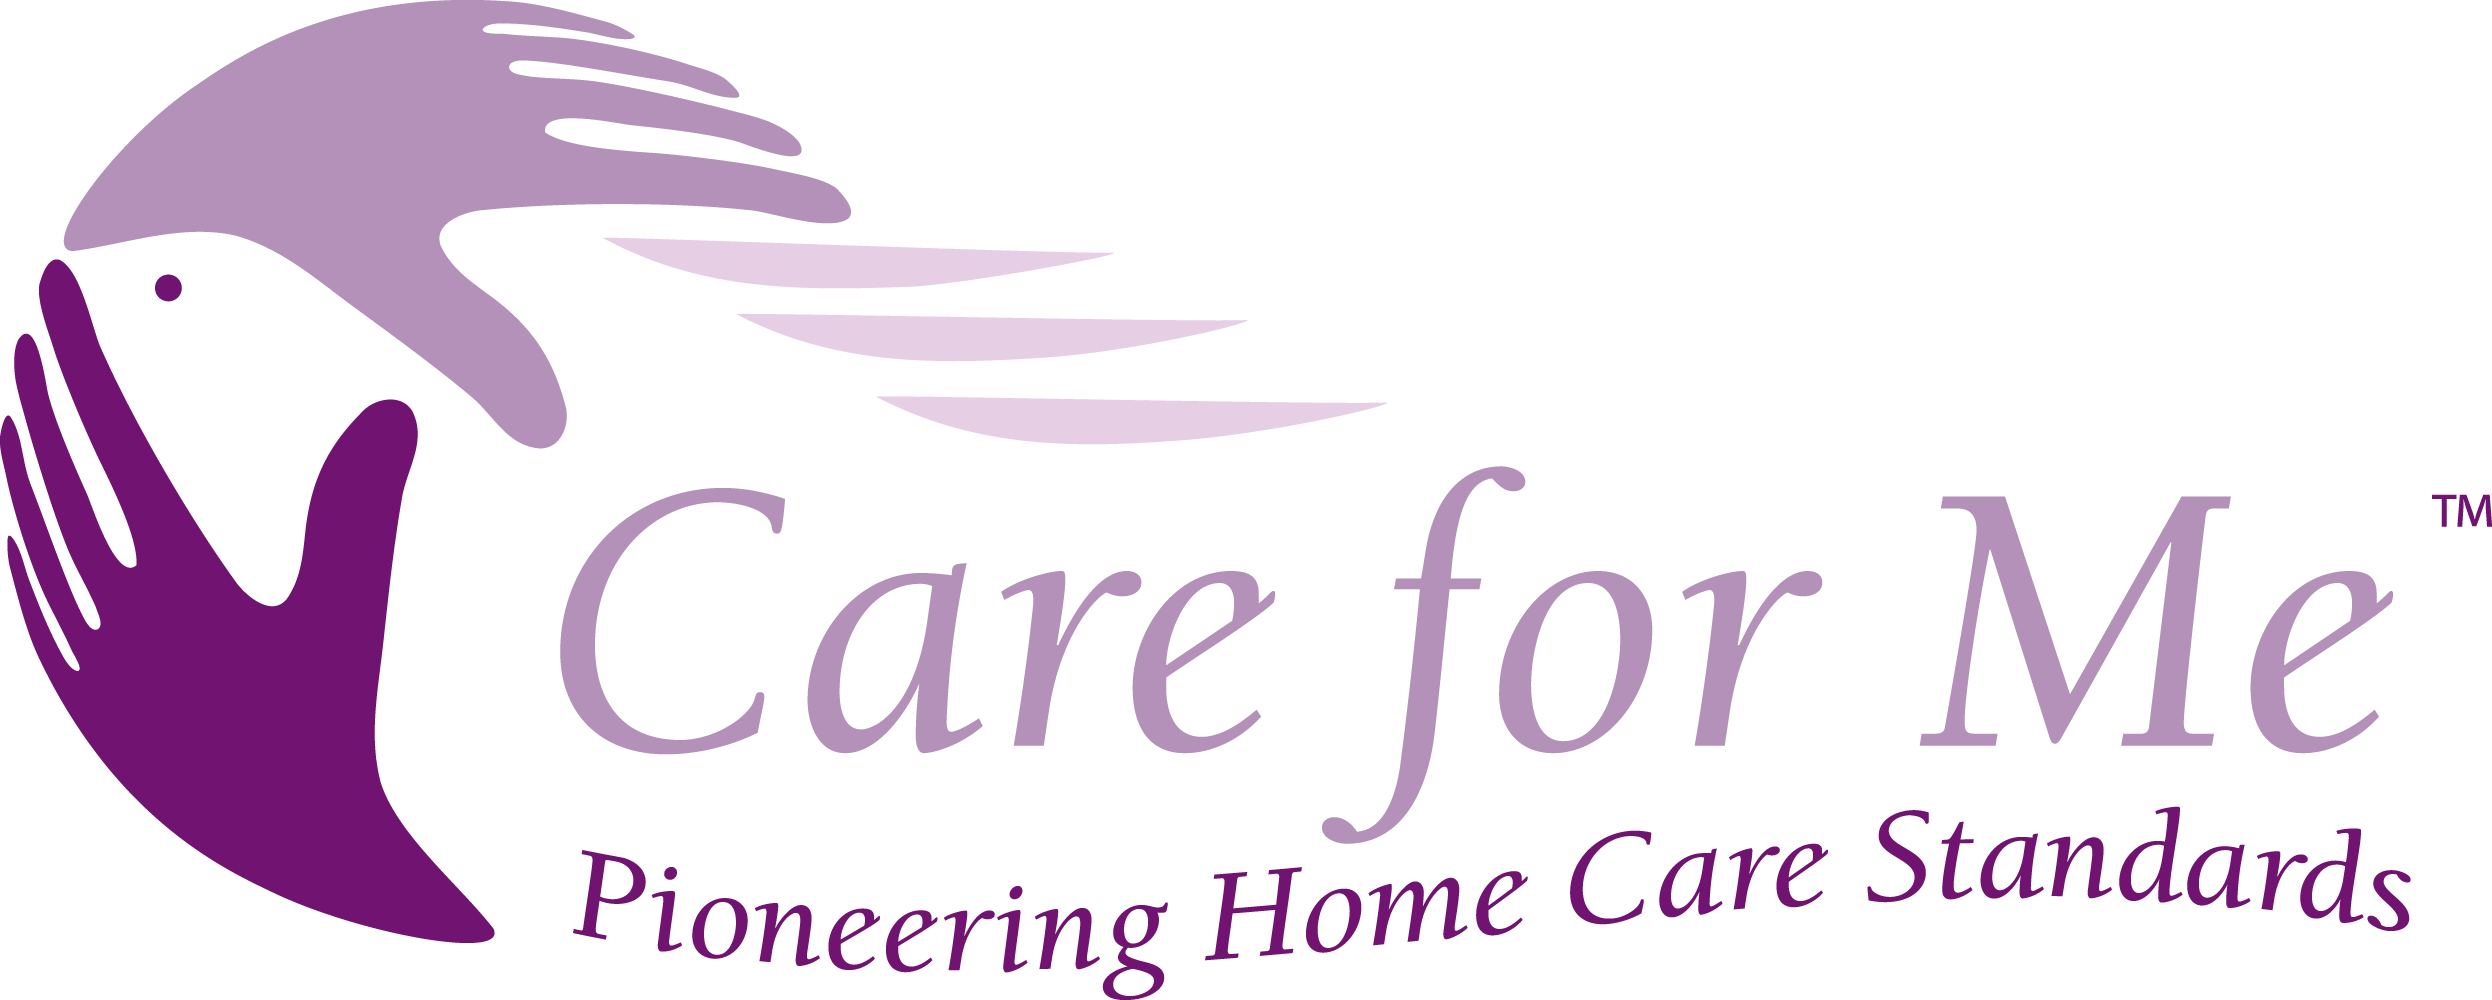 Care for Me Homecare